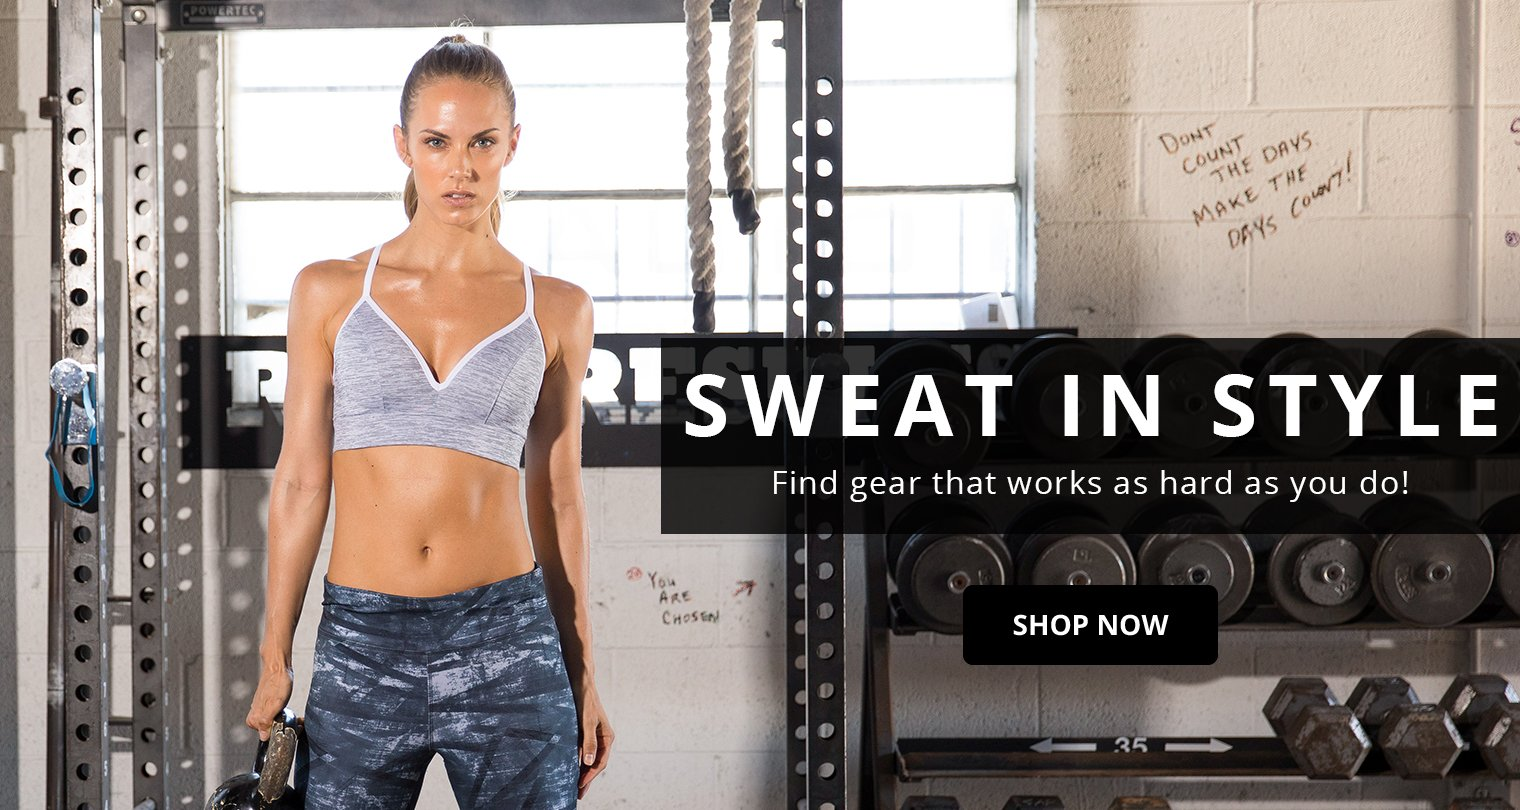 Sweat in style with clothing and footwear that works as hard as you do!